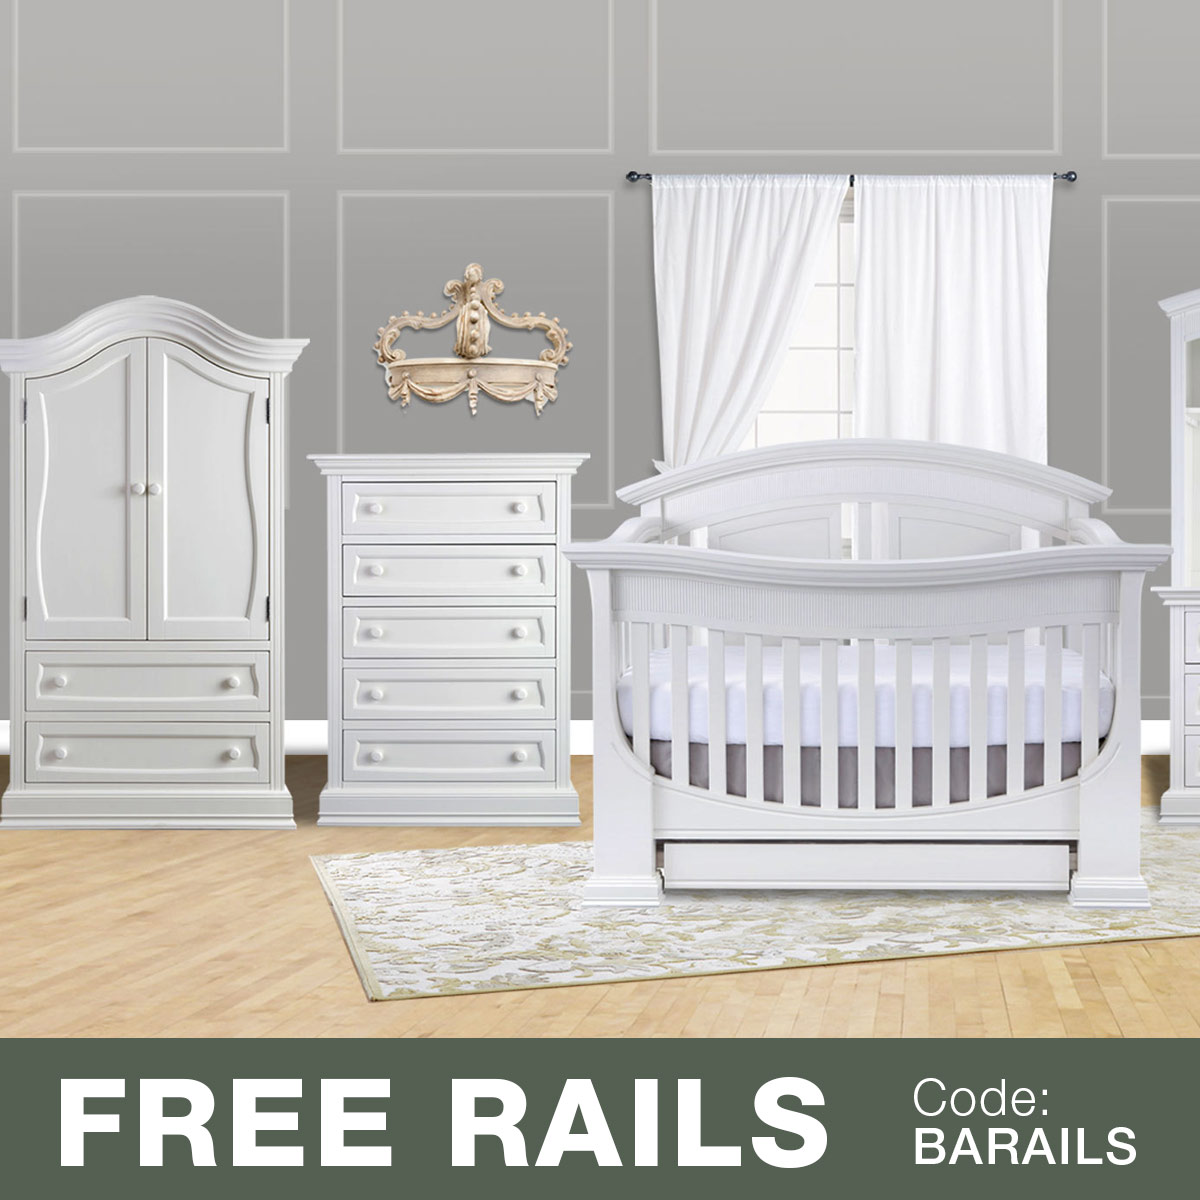 Baby Appleseed 3 Piece Nursery Set   Chelmsford 3 In 1 Convertible Crib,  Davenport 5 Drawer Tall Dresser And Armoire In Pure White FREE SHIPPING